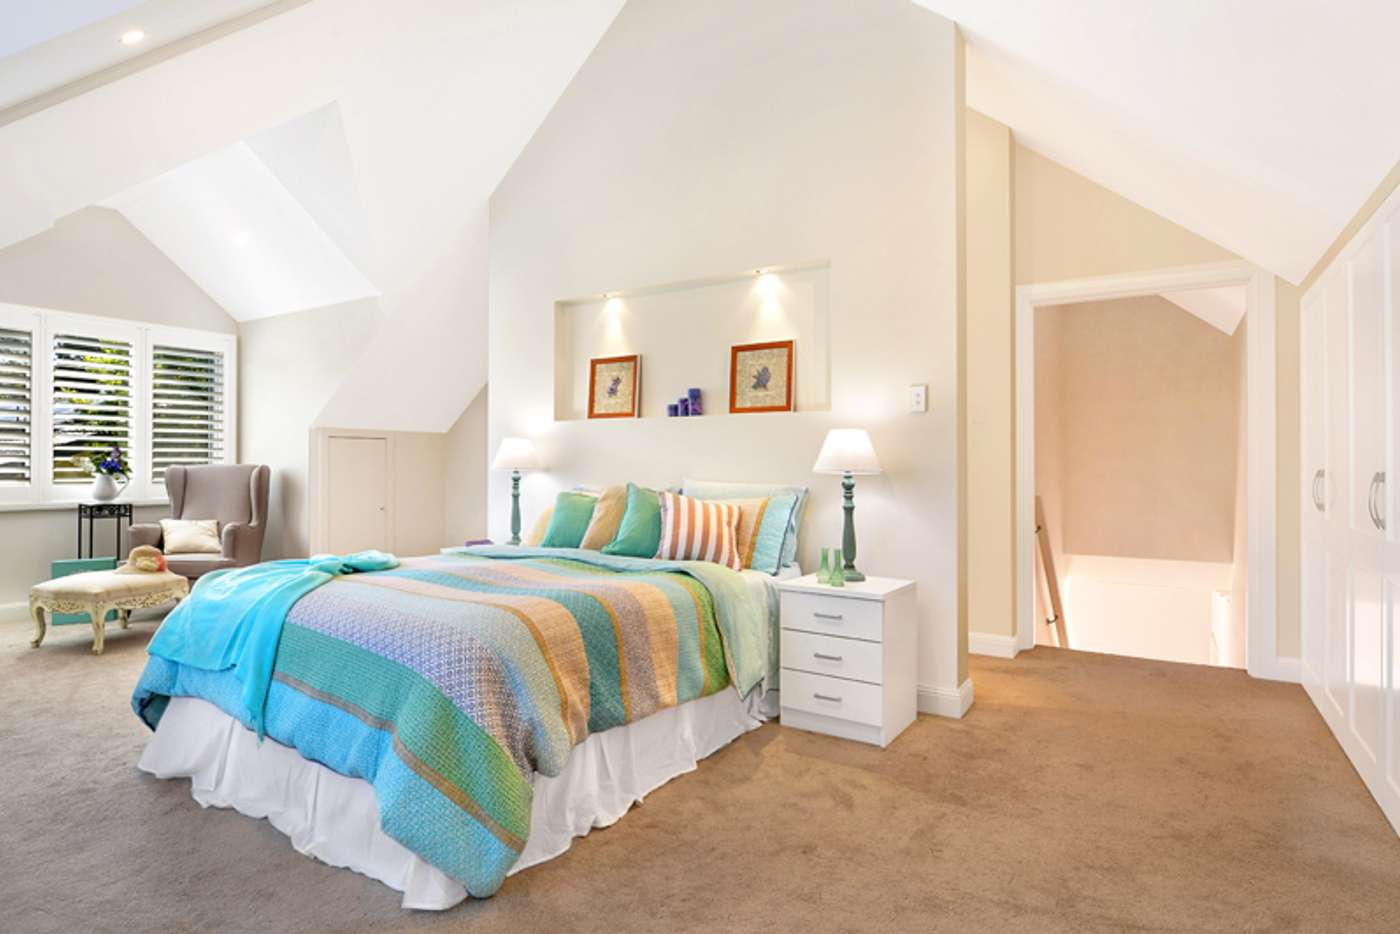 Sixth view of Homely house listing, 10 Annesley Avenue, Bowral NSW 2576